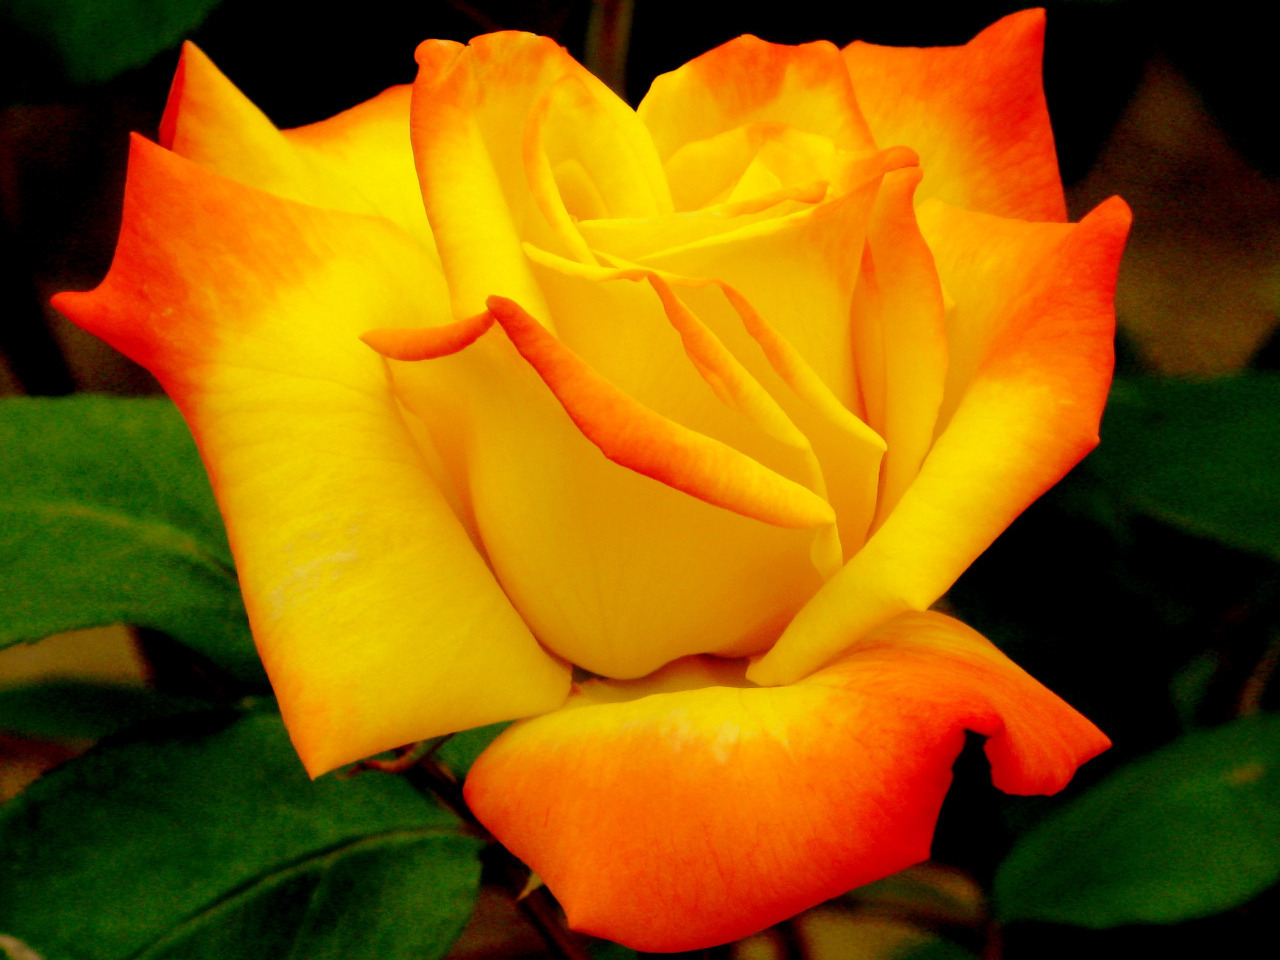 http://images4.fanpop.com/image/photos/18500000/Beautiful-Color-roses-18577529-1280-960.jpg